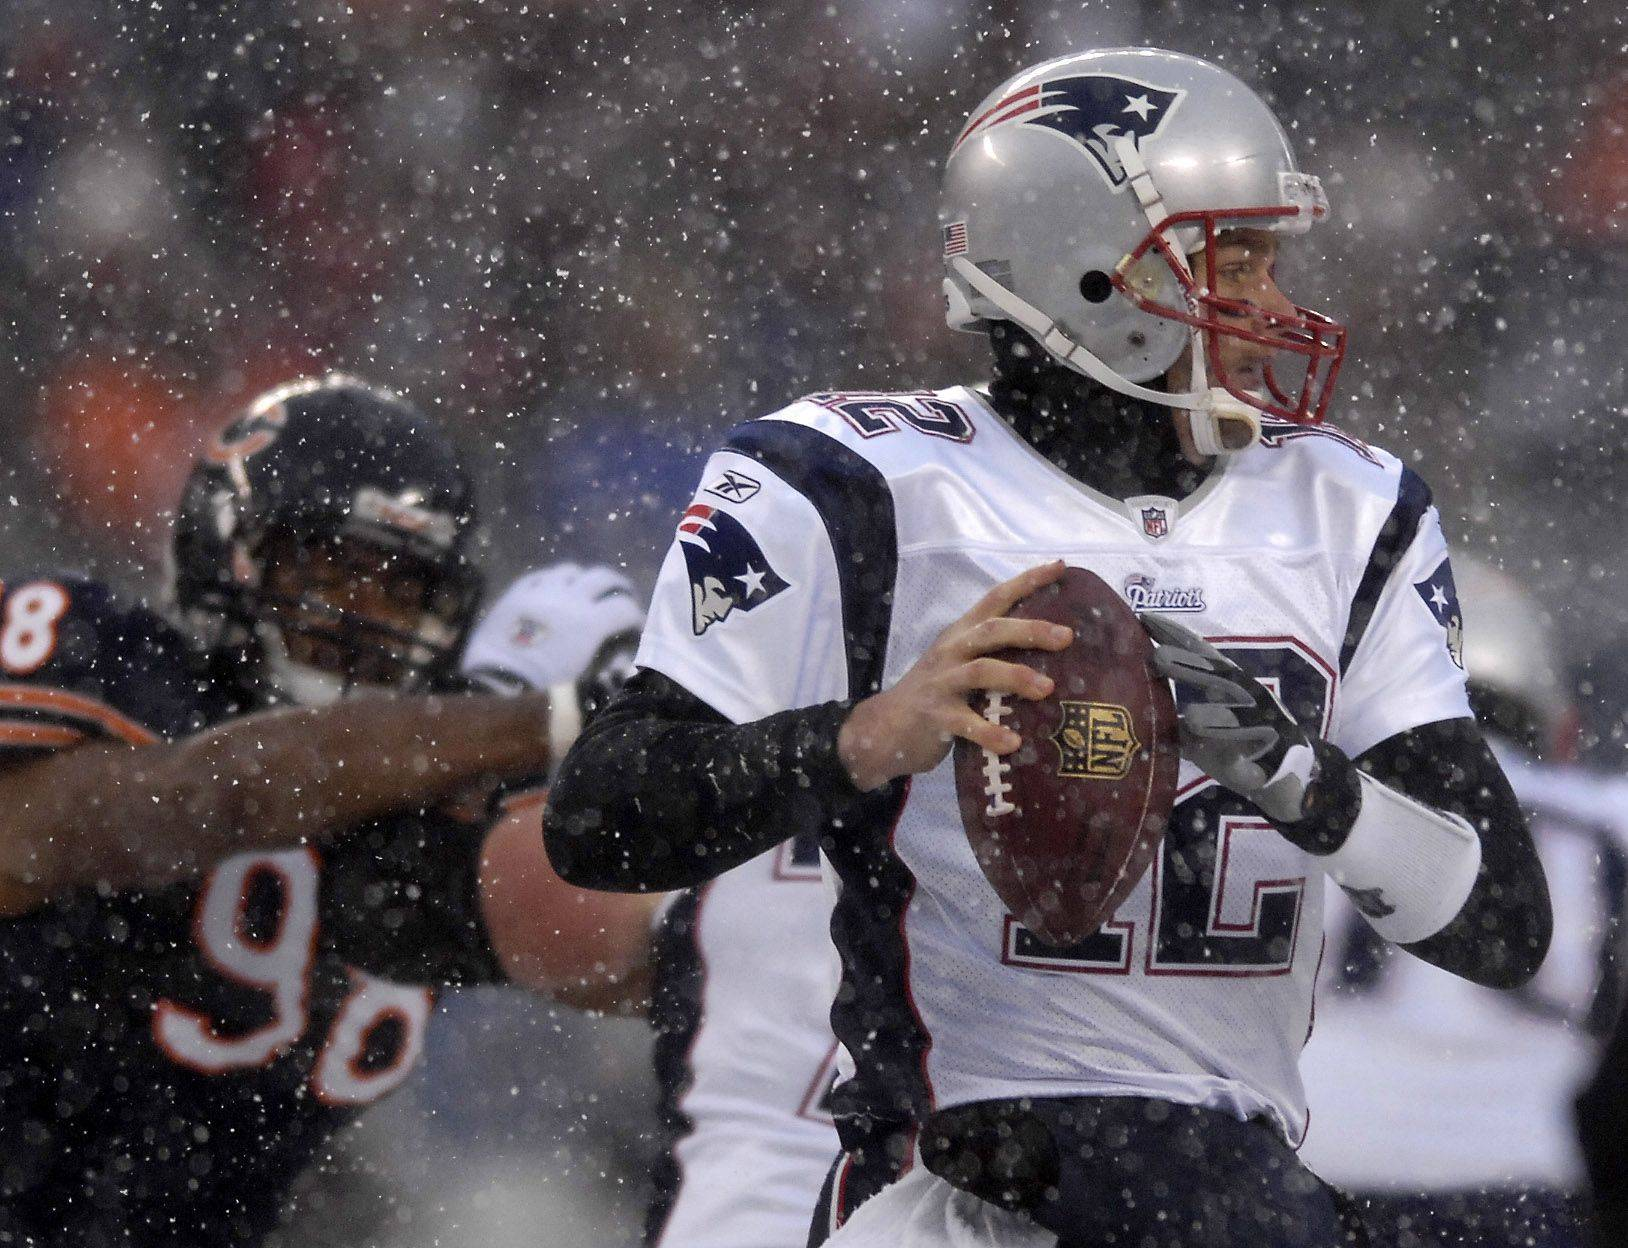 New England Patriots quarterback Tom Brady deserves the MVP award, according to Daily Herald fantasy football voters.